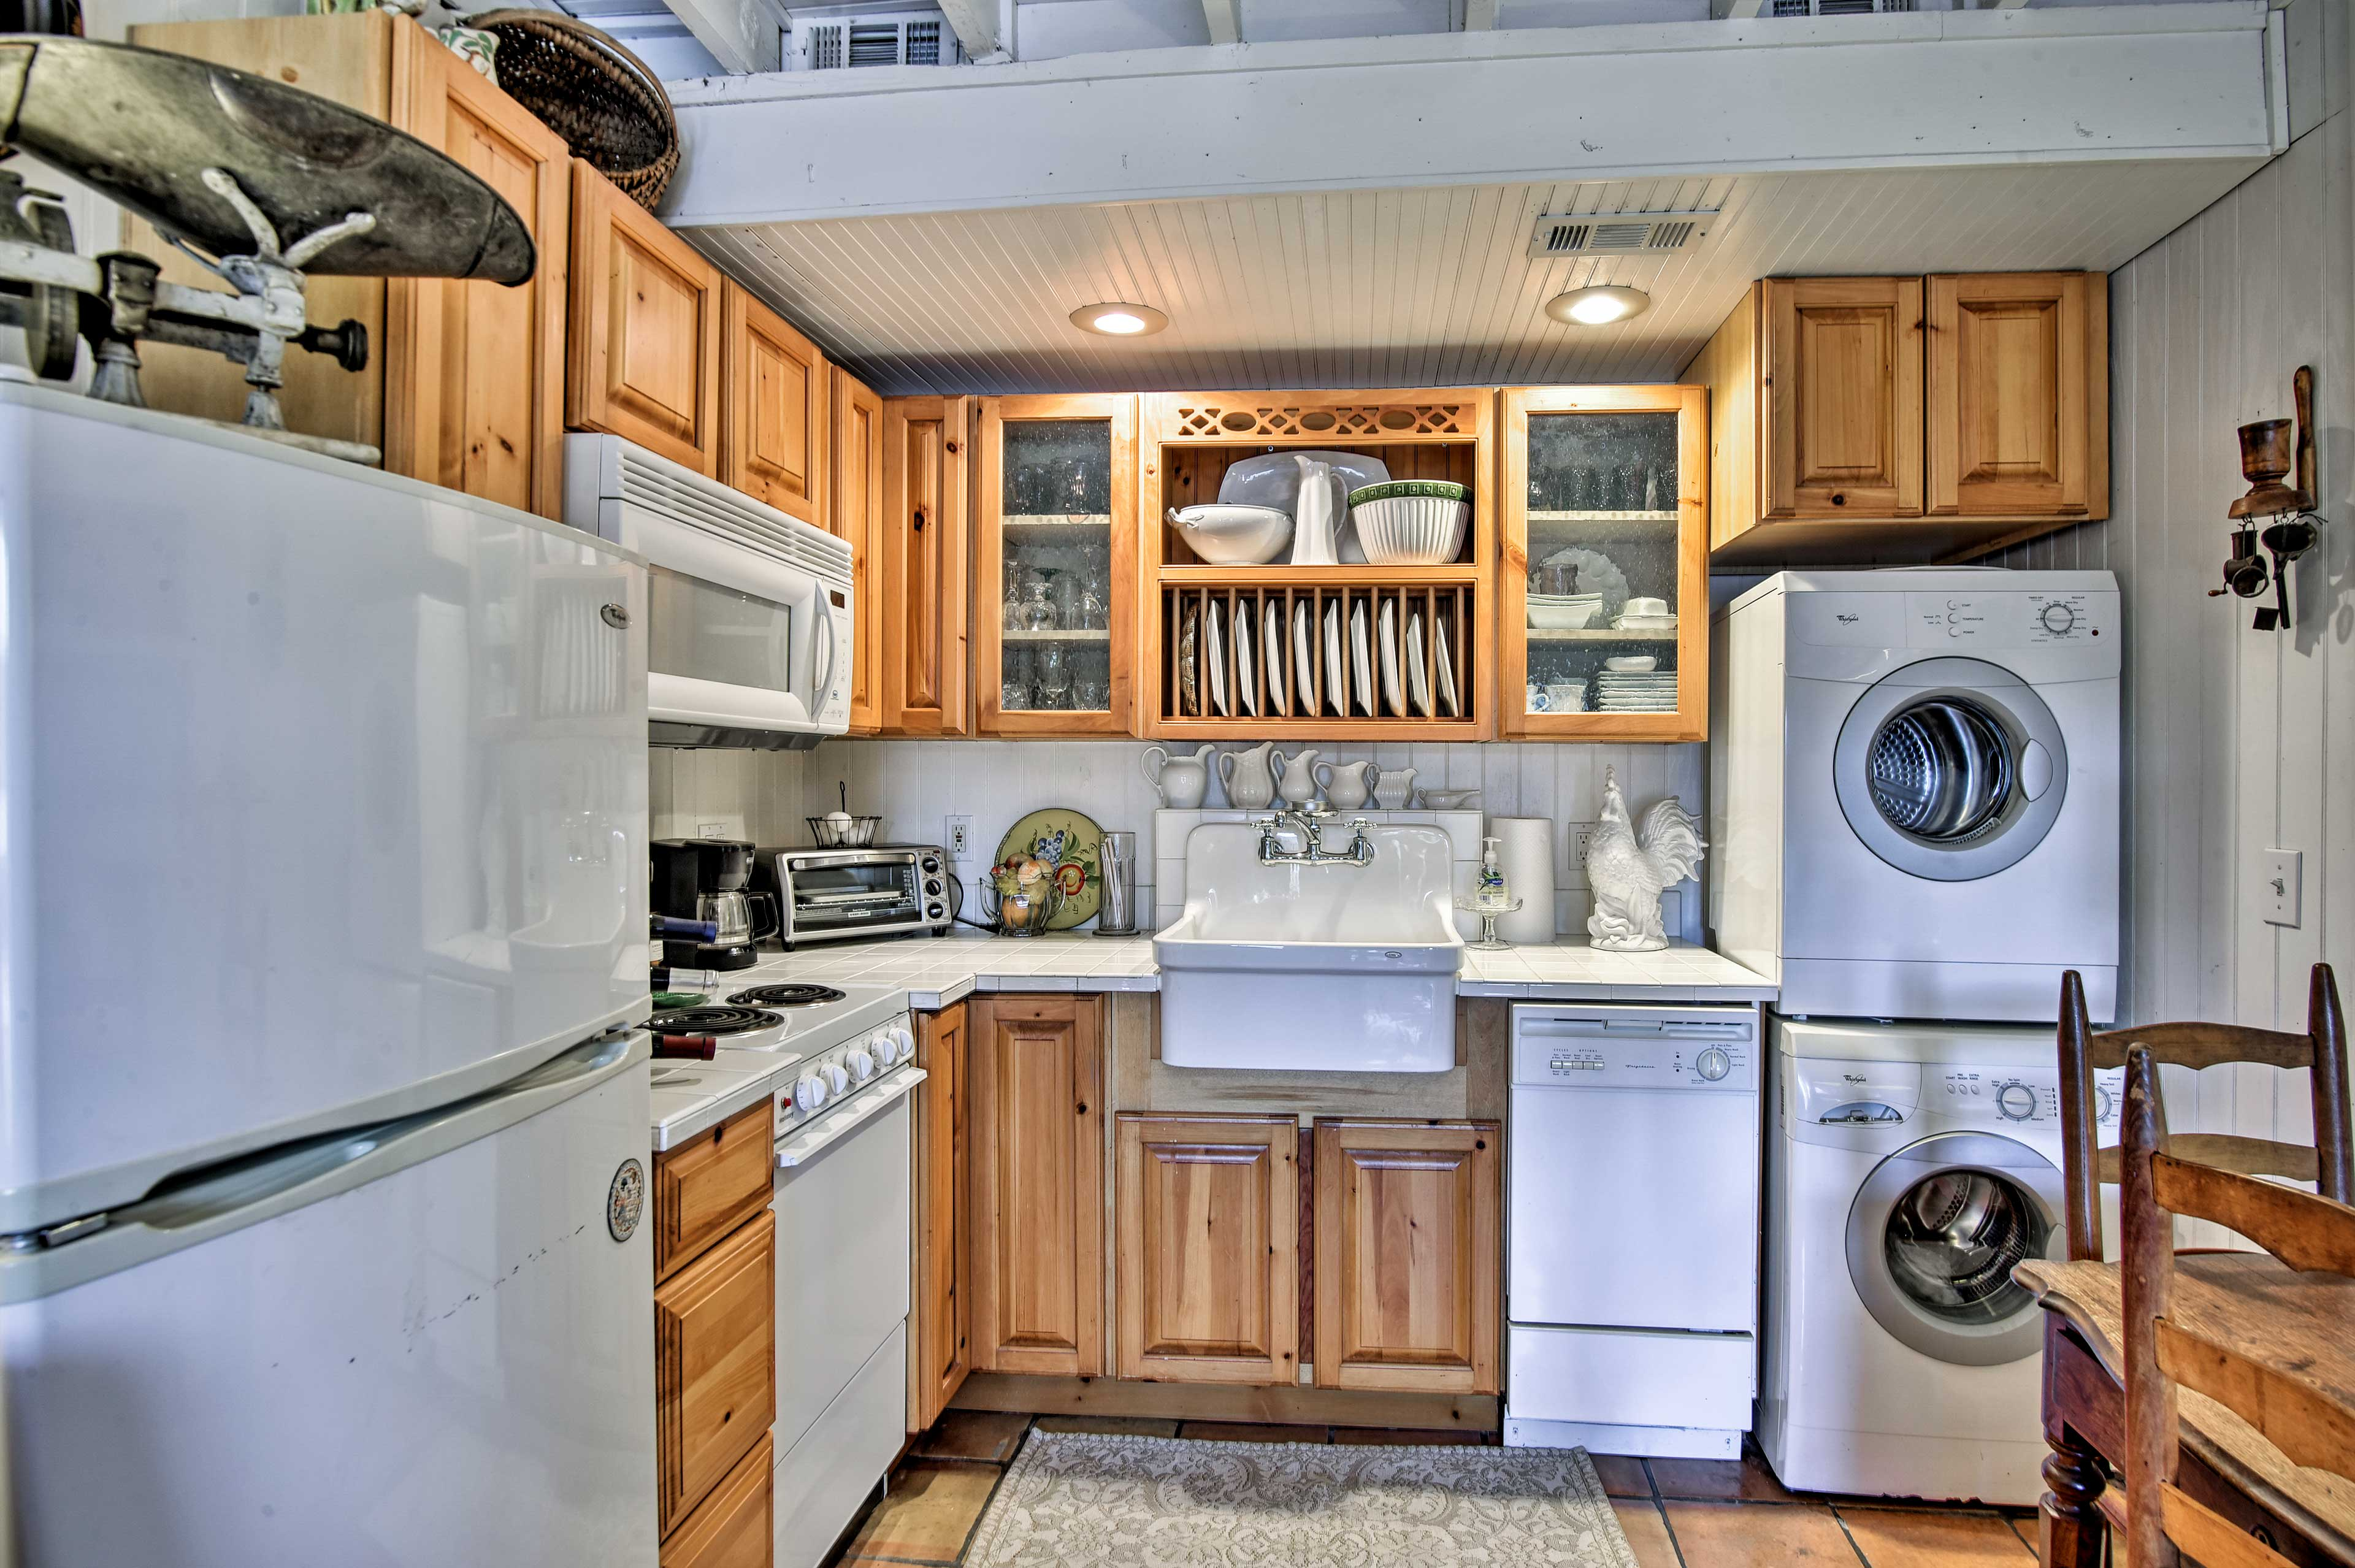 The kitchen comes well equipped with everything you should need to prepare meals